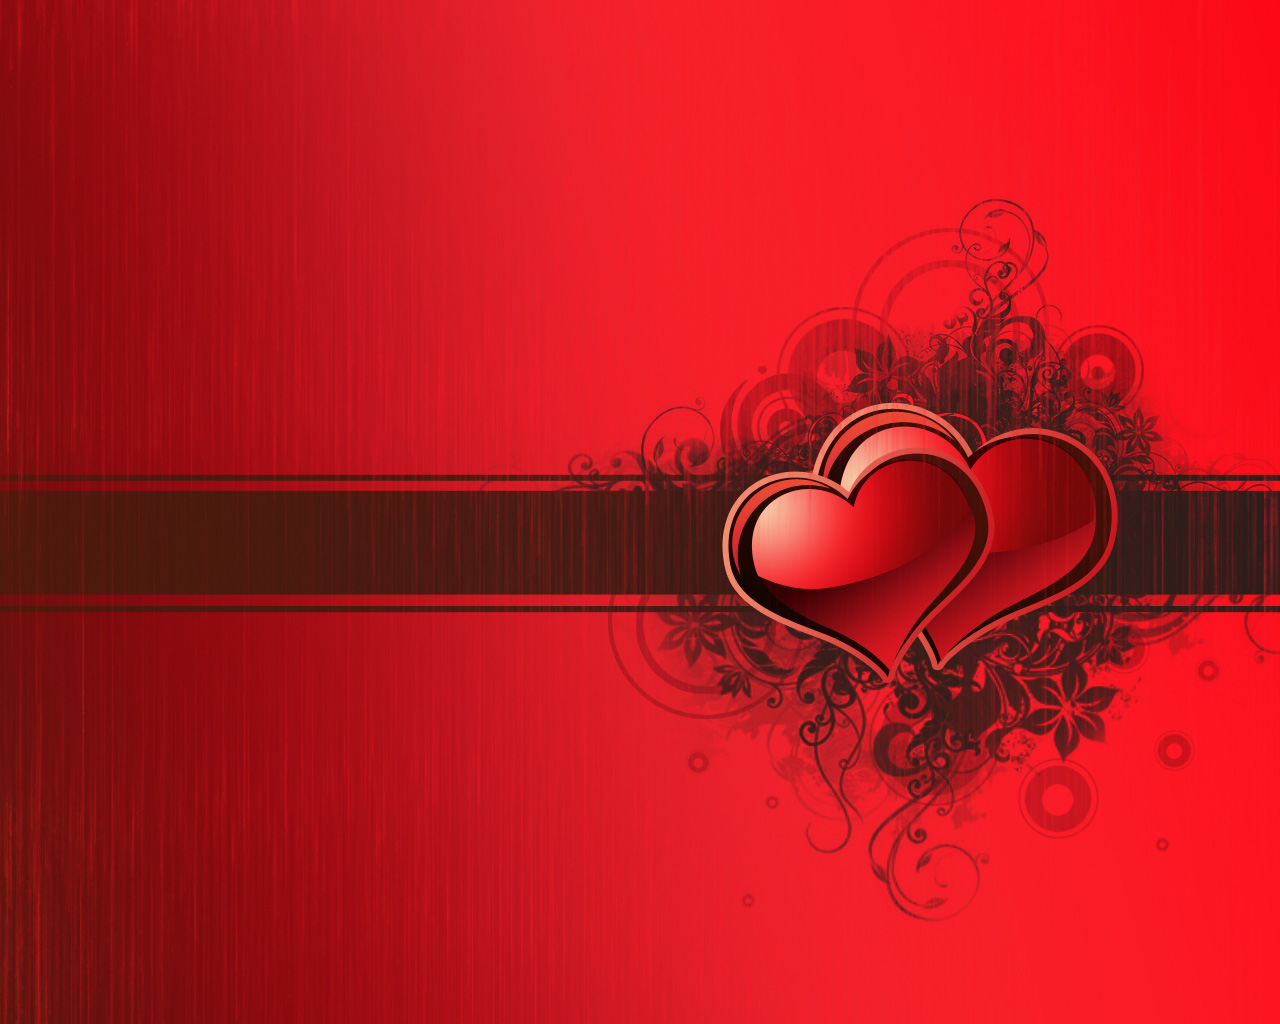 Happy Valentine Day 2013 HD Wallpapers | Happy Valentine day 2013 wallpapers, SMS, quotes ...